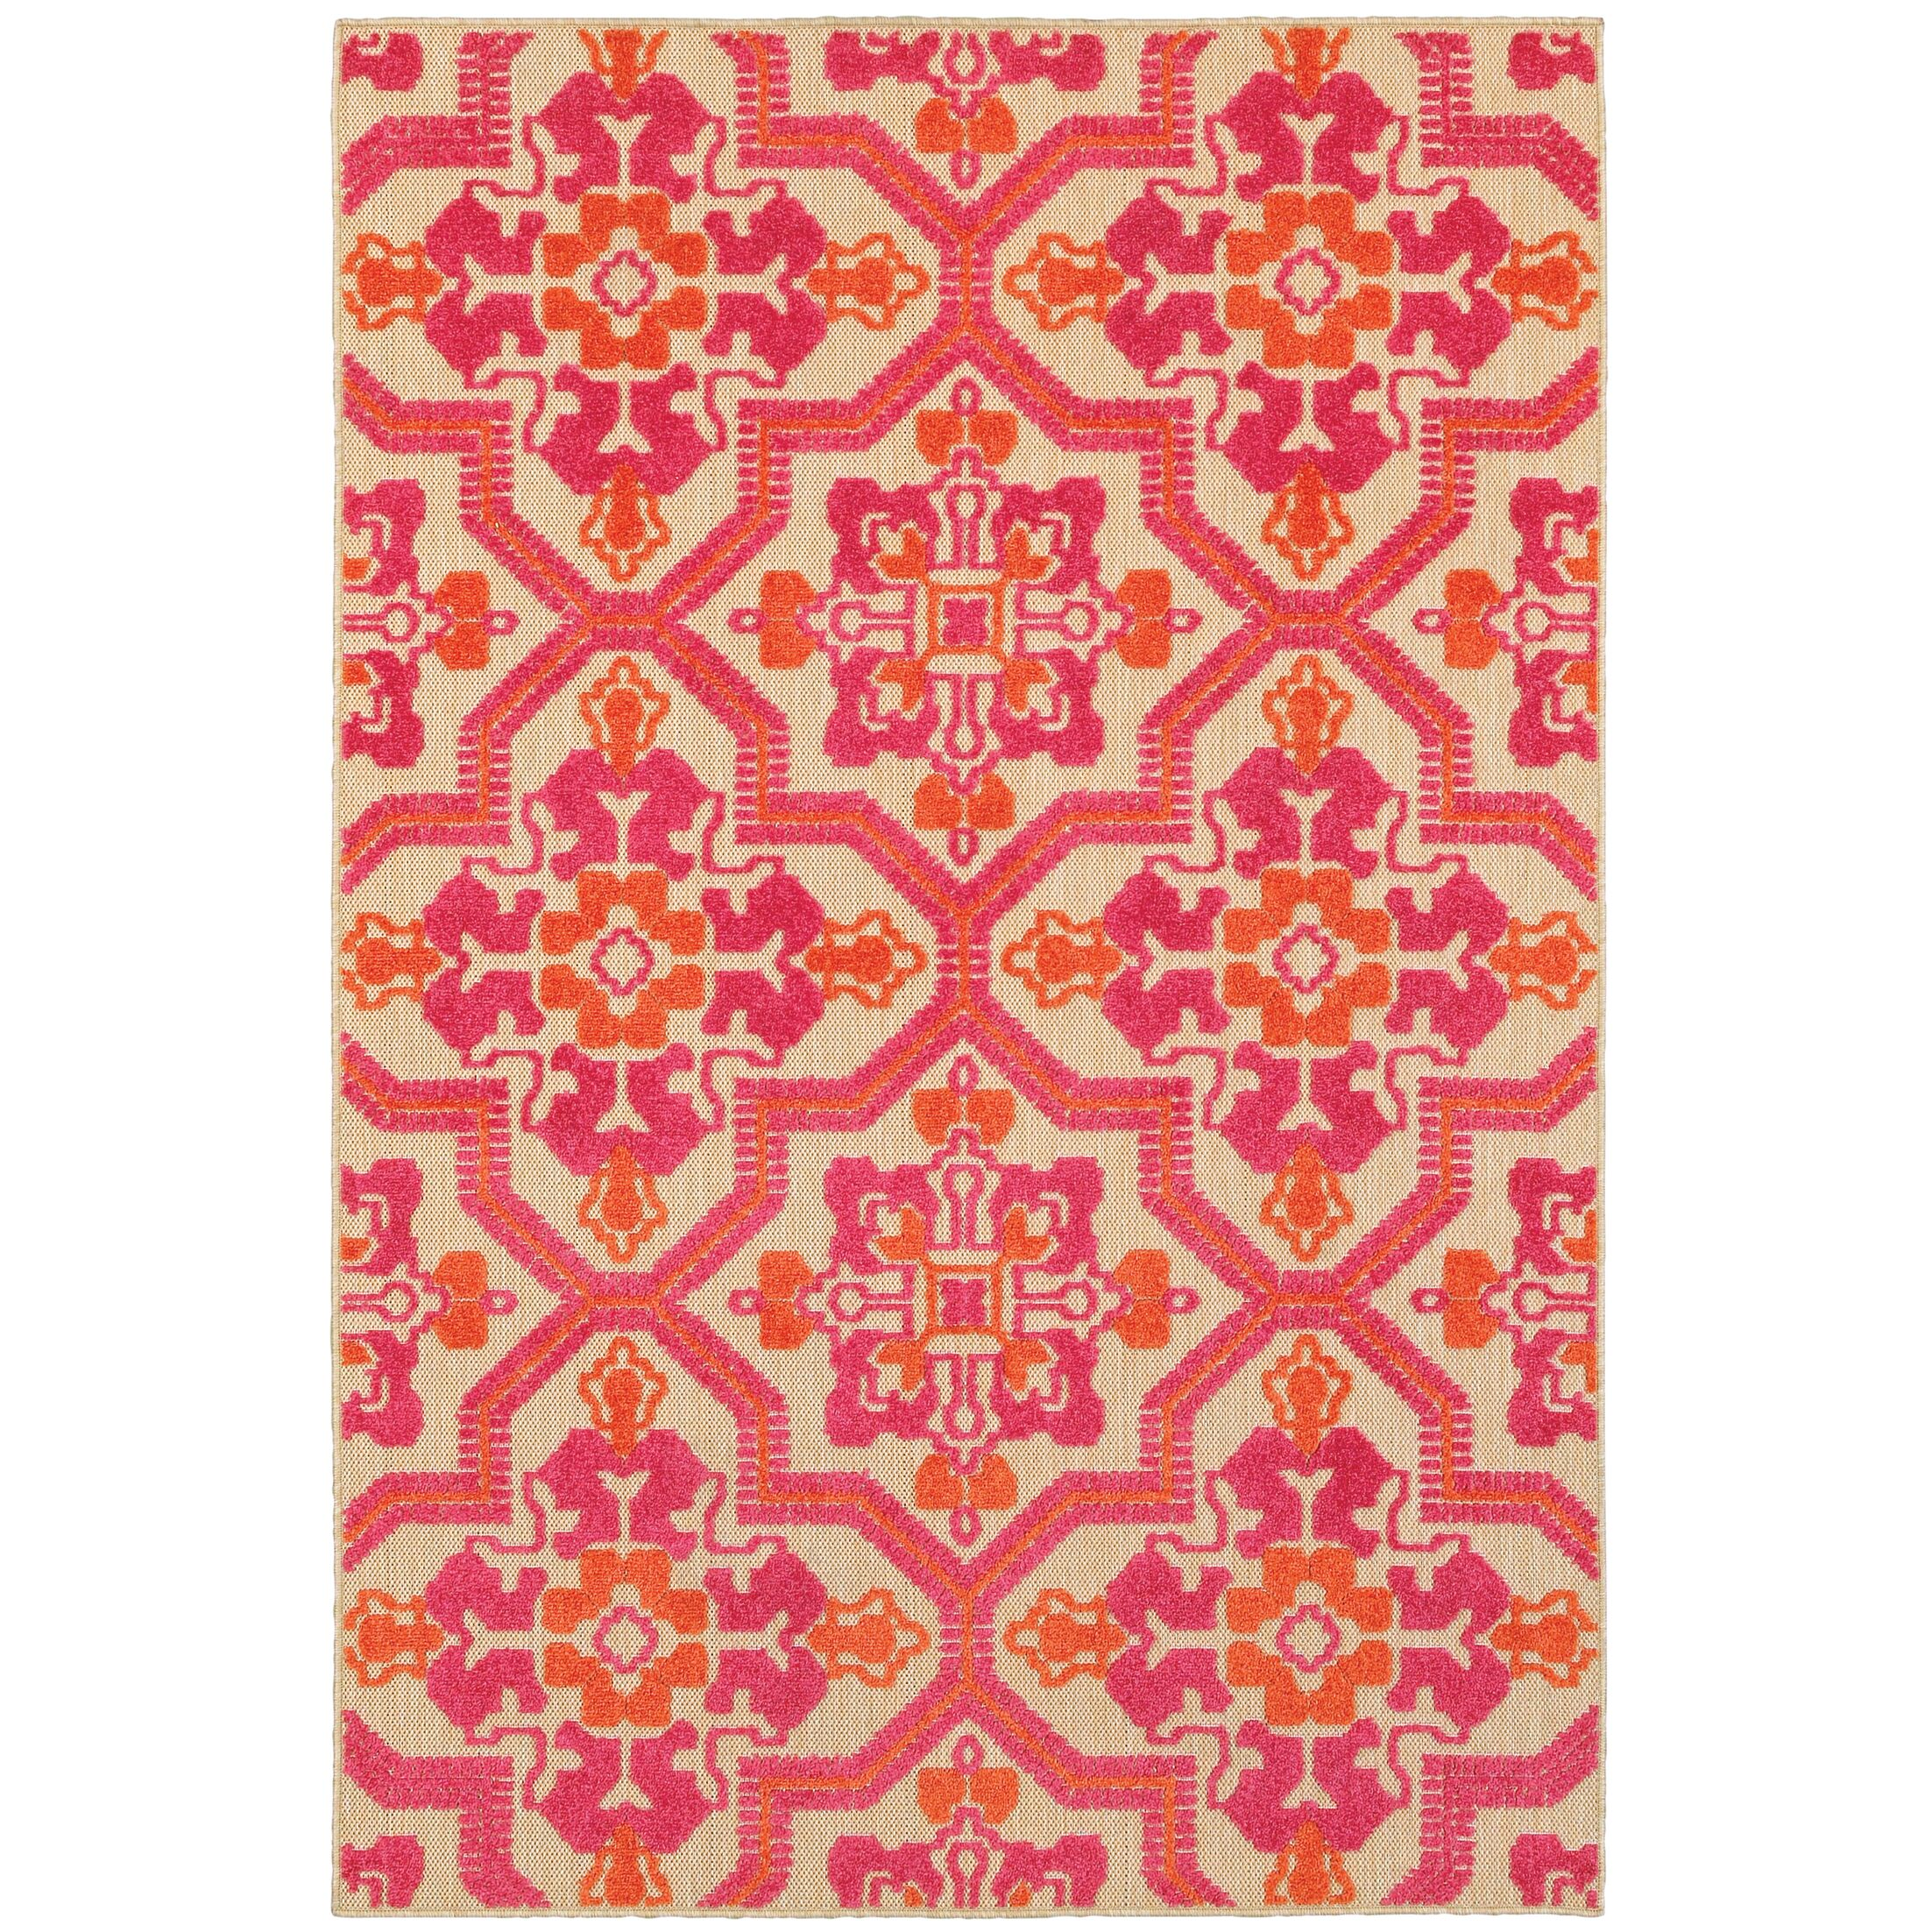 Sawin Sand/Pink Indoor/Outdoor Area Rug Size: Rectangle 5'3